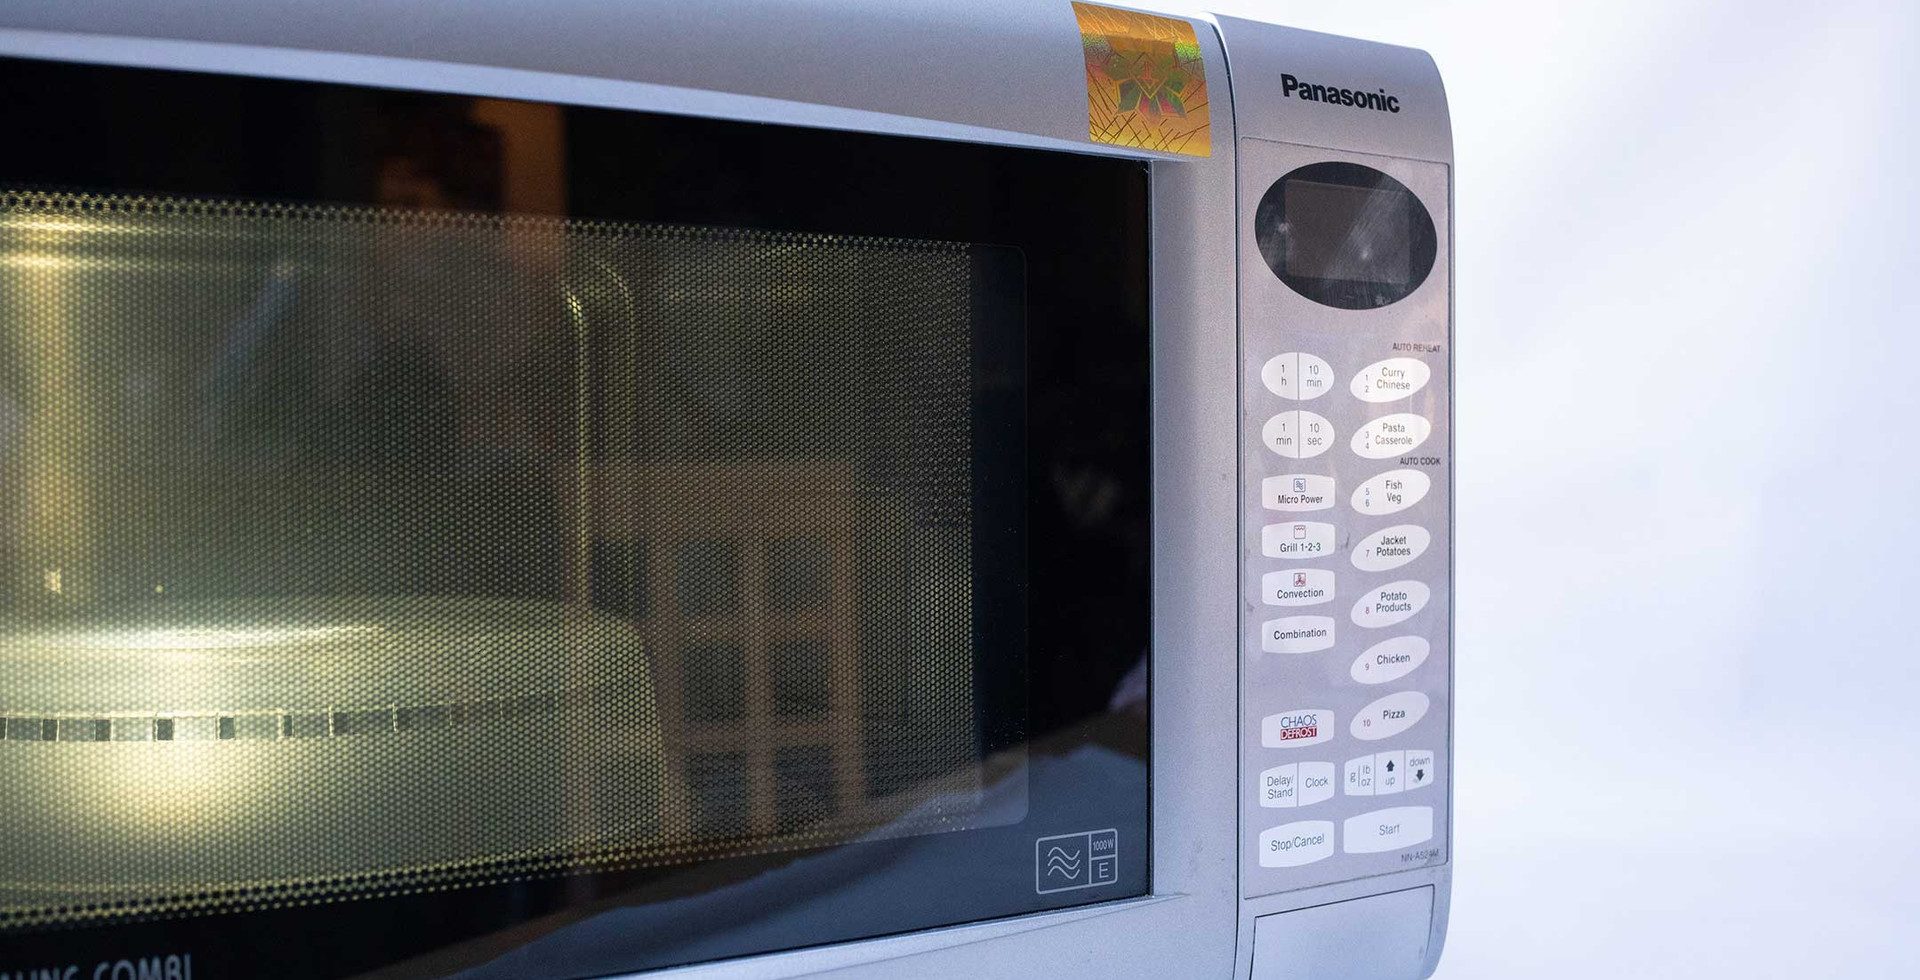 EMF sticker on Microwave.jpg